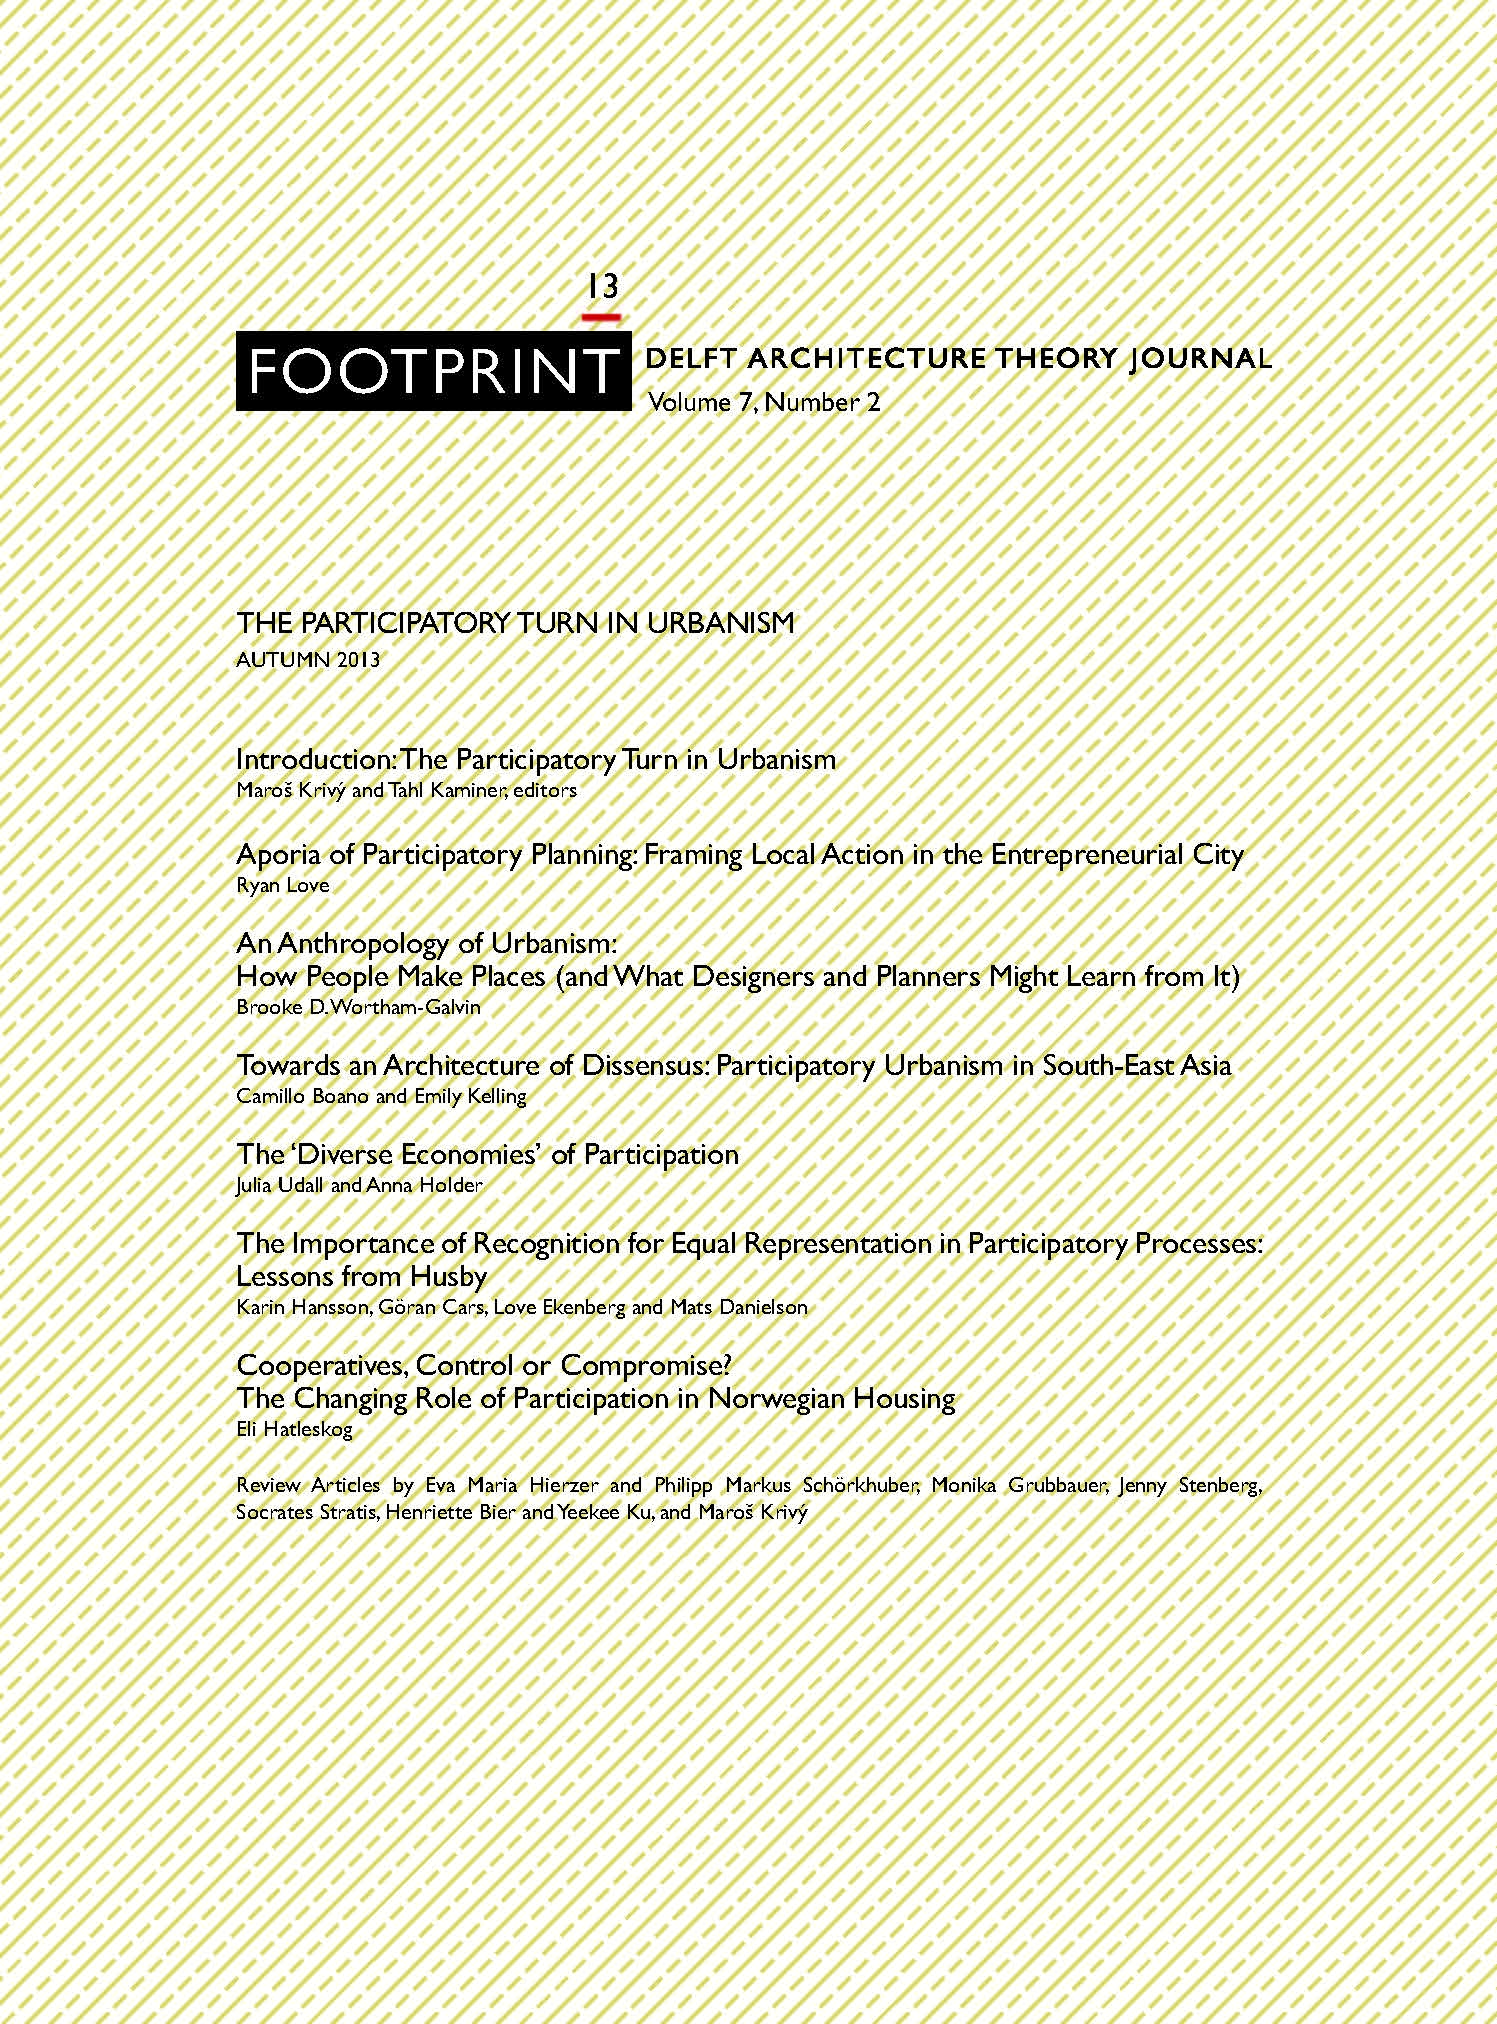 View Issue # 13 | Autumn 2013 | The Participatory Turn in Urbanism